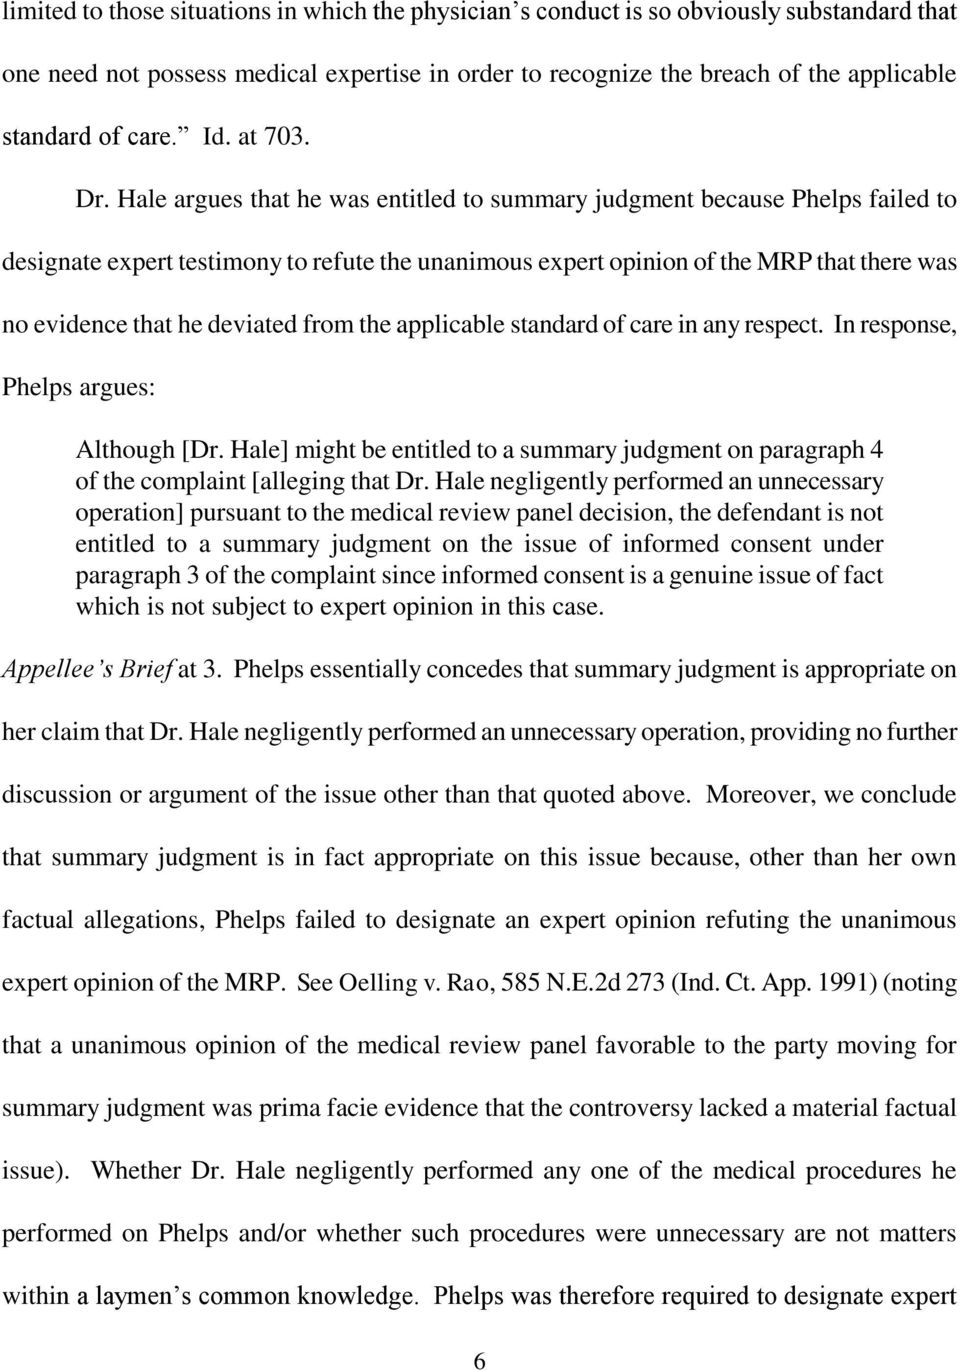 Hale argues that he was entitled to summary judgment because Phelps failed to designate expert testimony to refute the unanimous expert opinion of the MRP that there was no evidence that he deviated